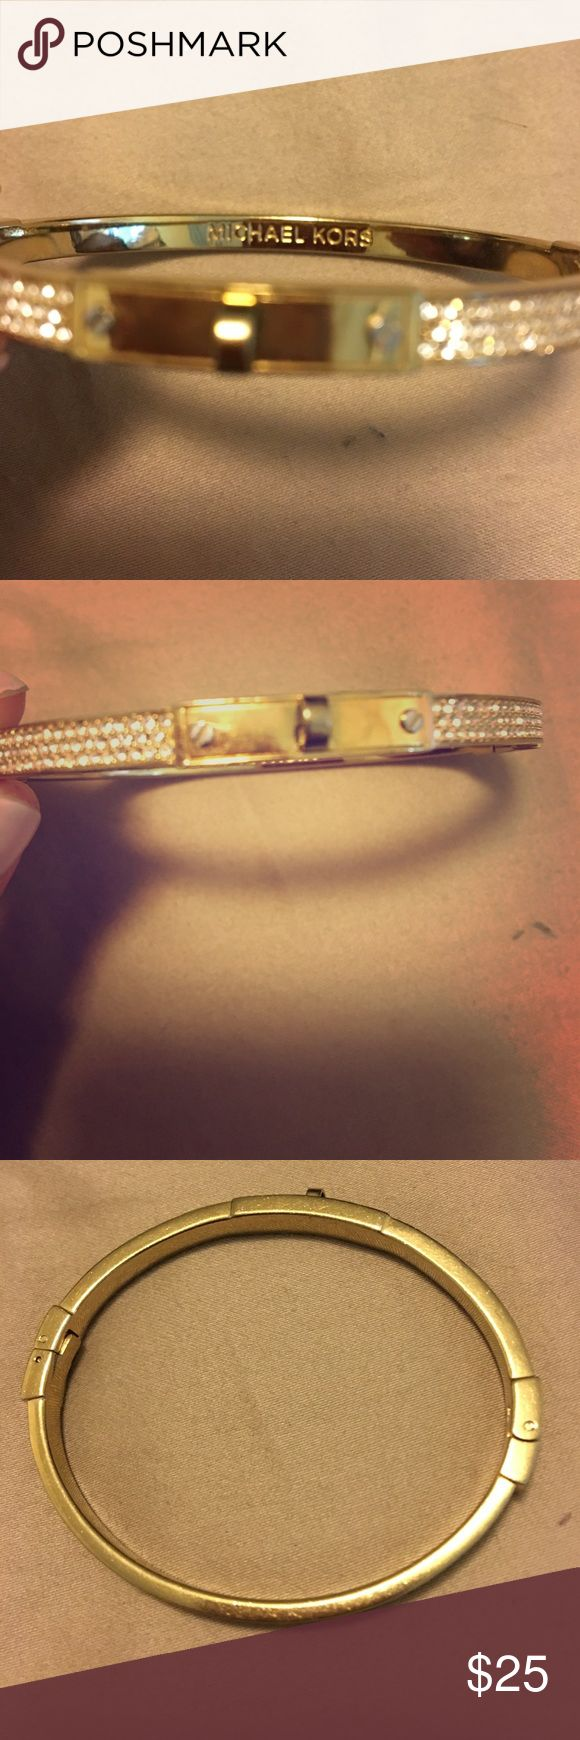 Michael Kors lock bracelet Gold color. The lock fell out. Worn as a bangle Michael Kors Jewelry Bracelets